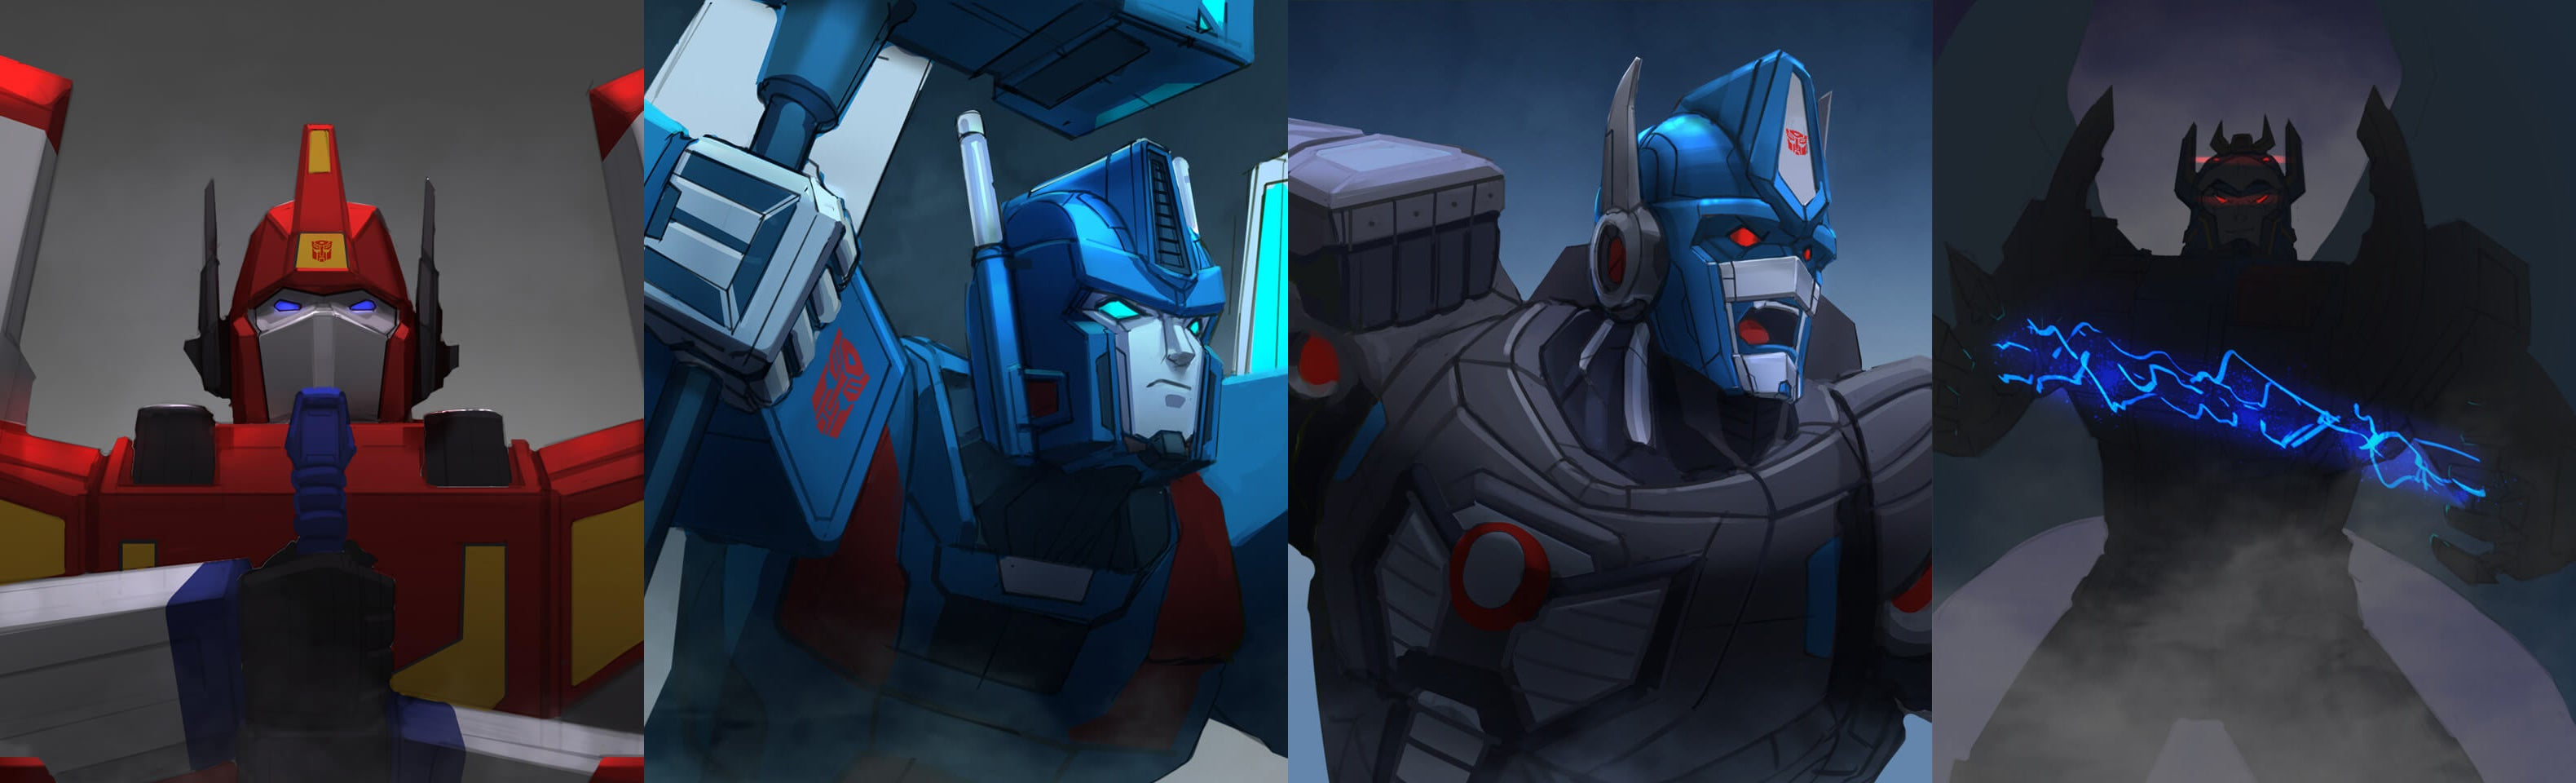 One Of These Four Transformers Will Be The Next Leader Of Cybertron